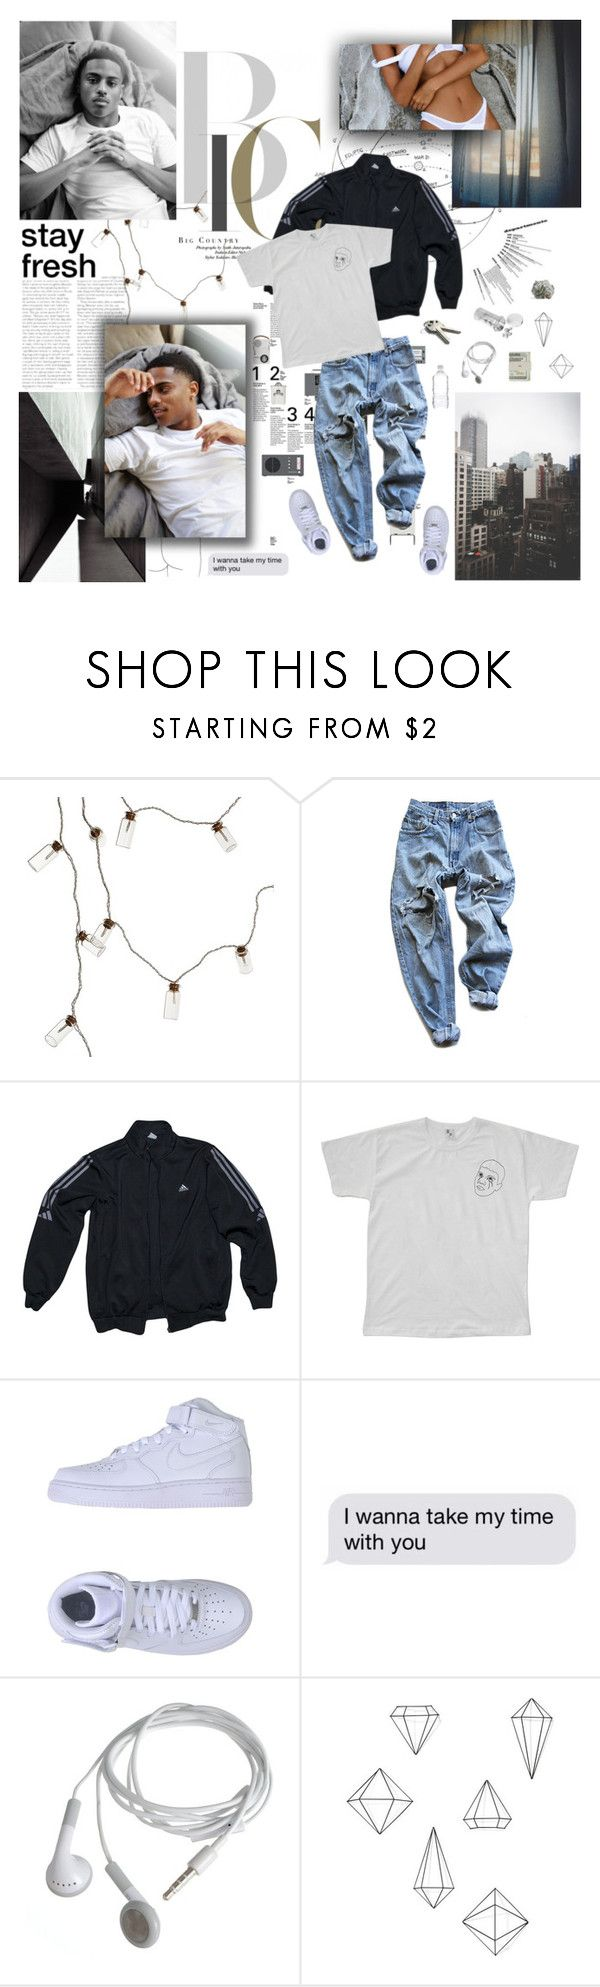 """FLIRT WITH YA GIRL LIKE YOU STILL TRYNA PULL HER."" by ilunqa ❤ liked on Polyvore featuring Klar, Levi's, adidas, We Are Still Bold and Beautiful, NIKE, Again, Umbra, Jack Spade, men's fashion and menswear"